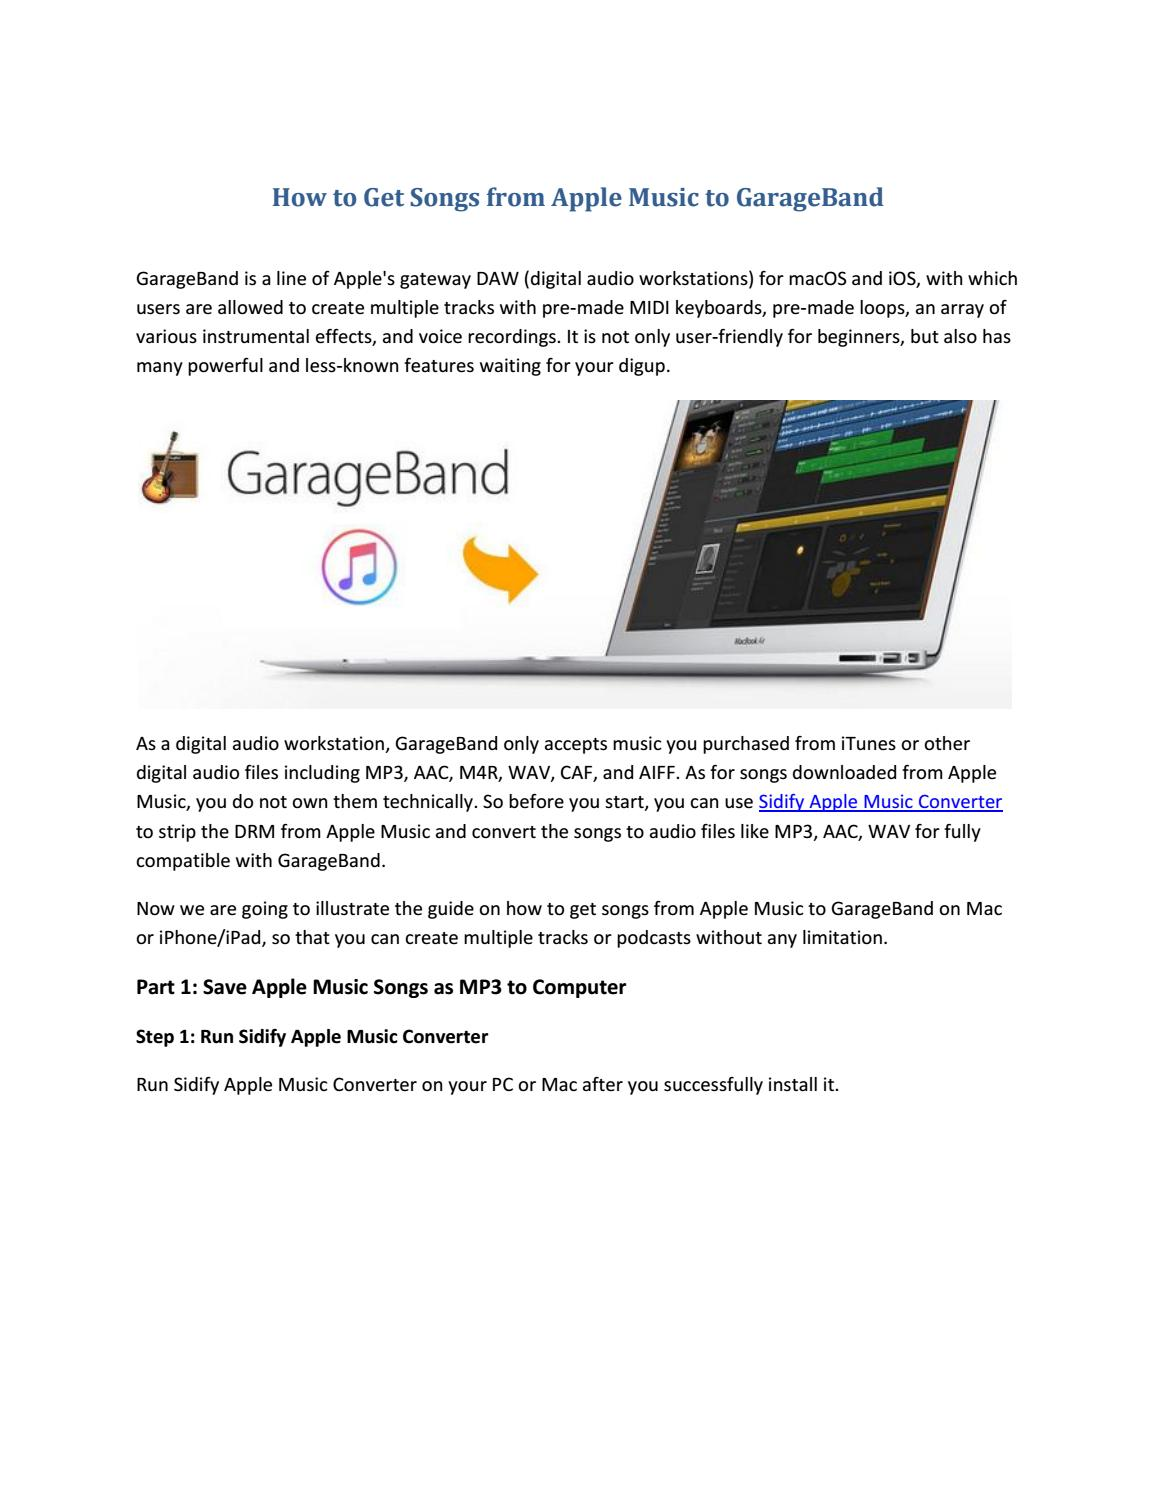 How to Get Songs from Apple Music to GarageBand by Paris